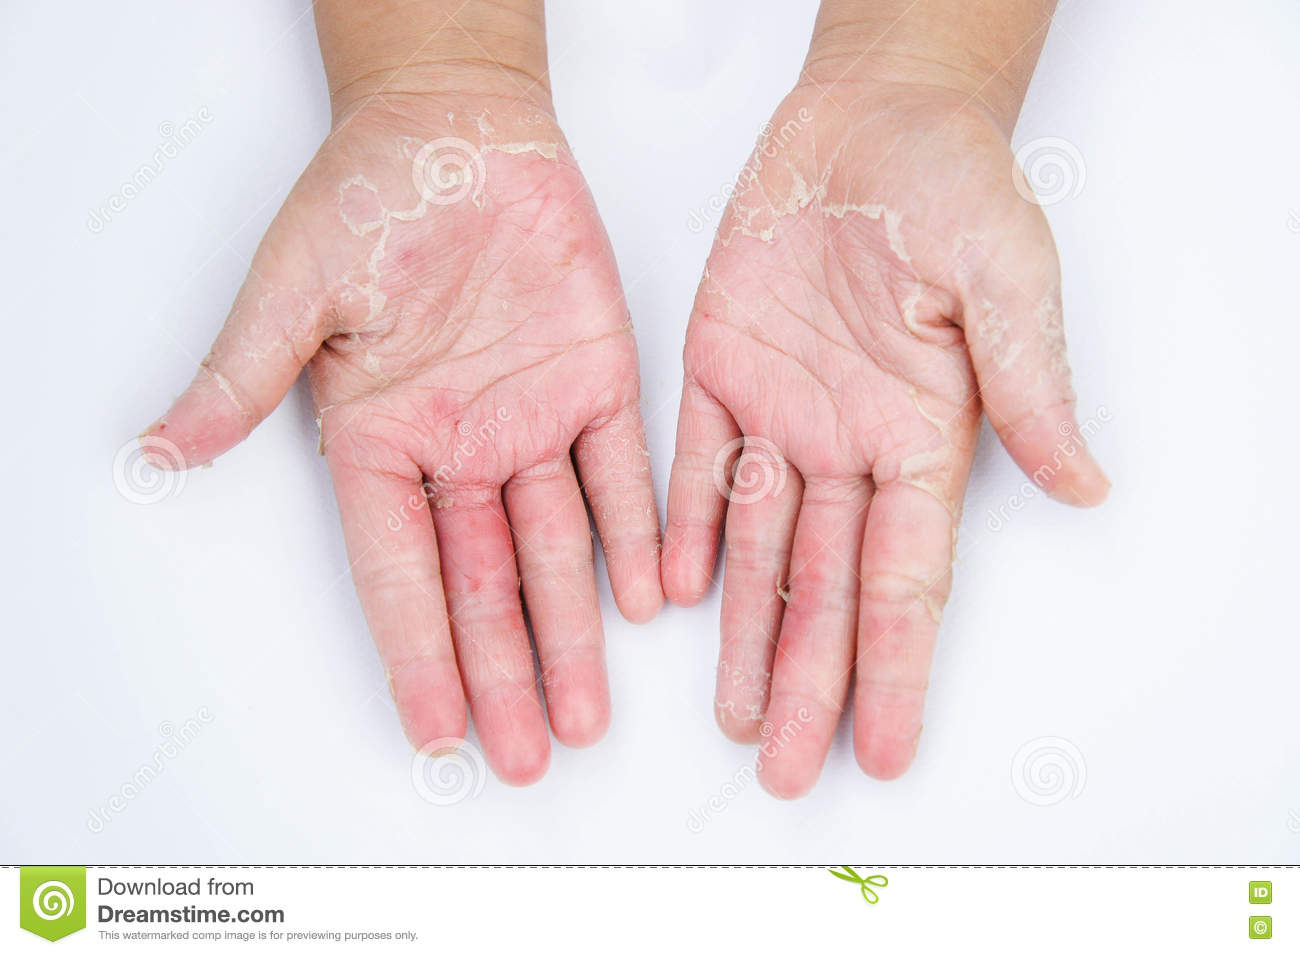 The Dry hands, peel, Contact dermatitis, fungal infections, Skin inf